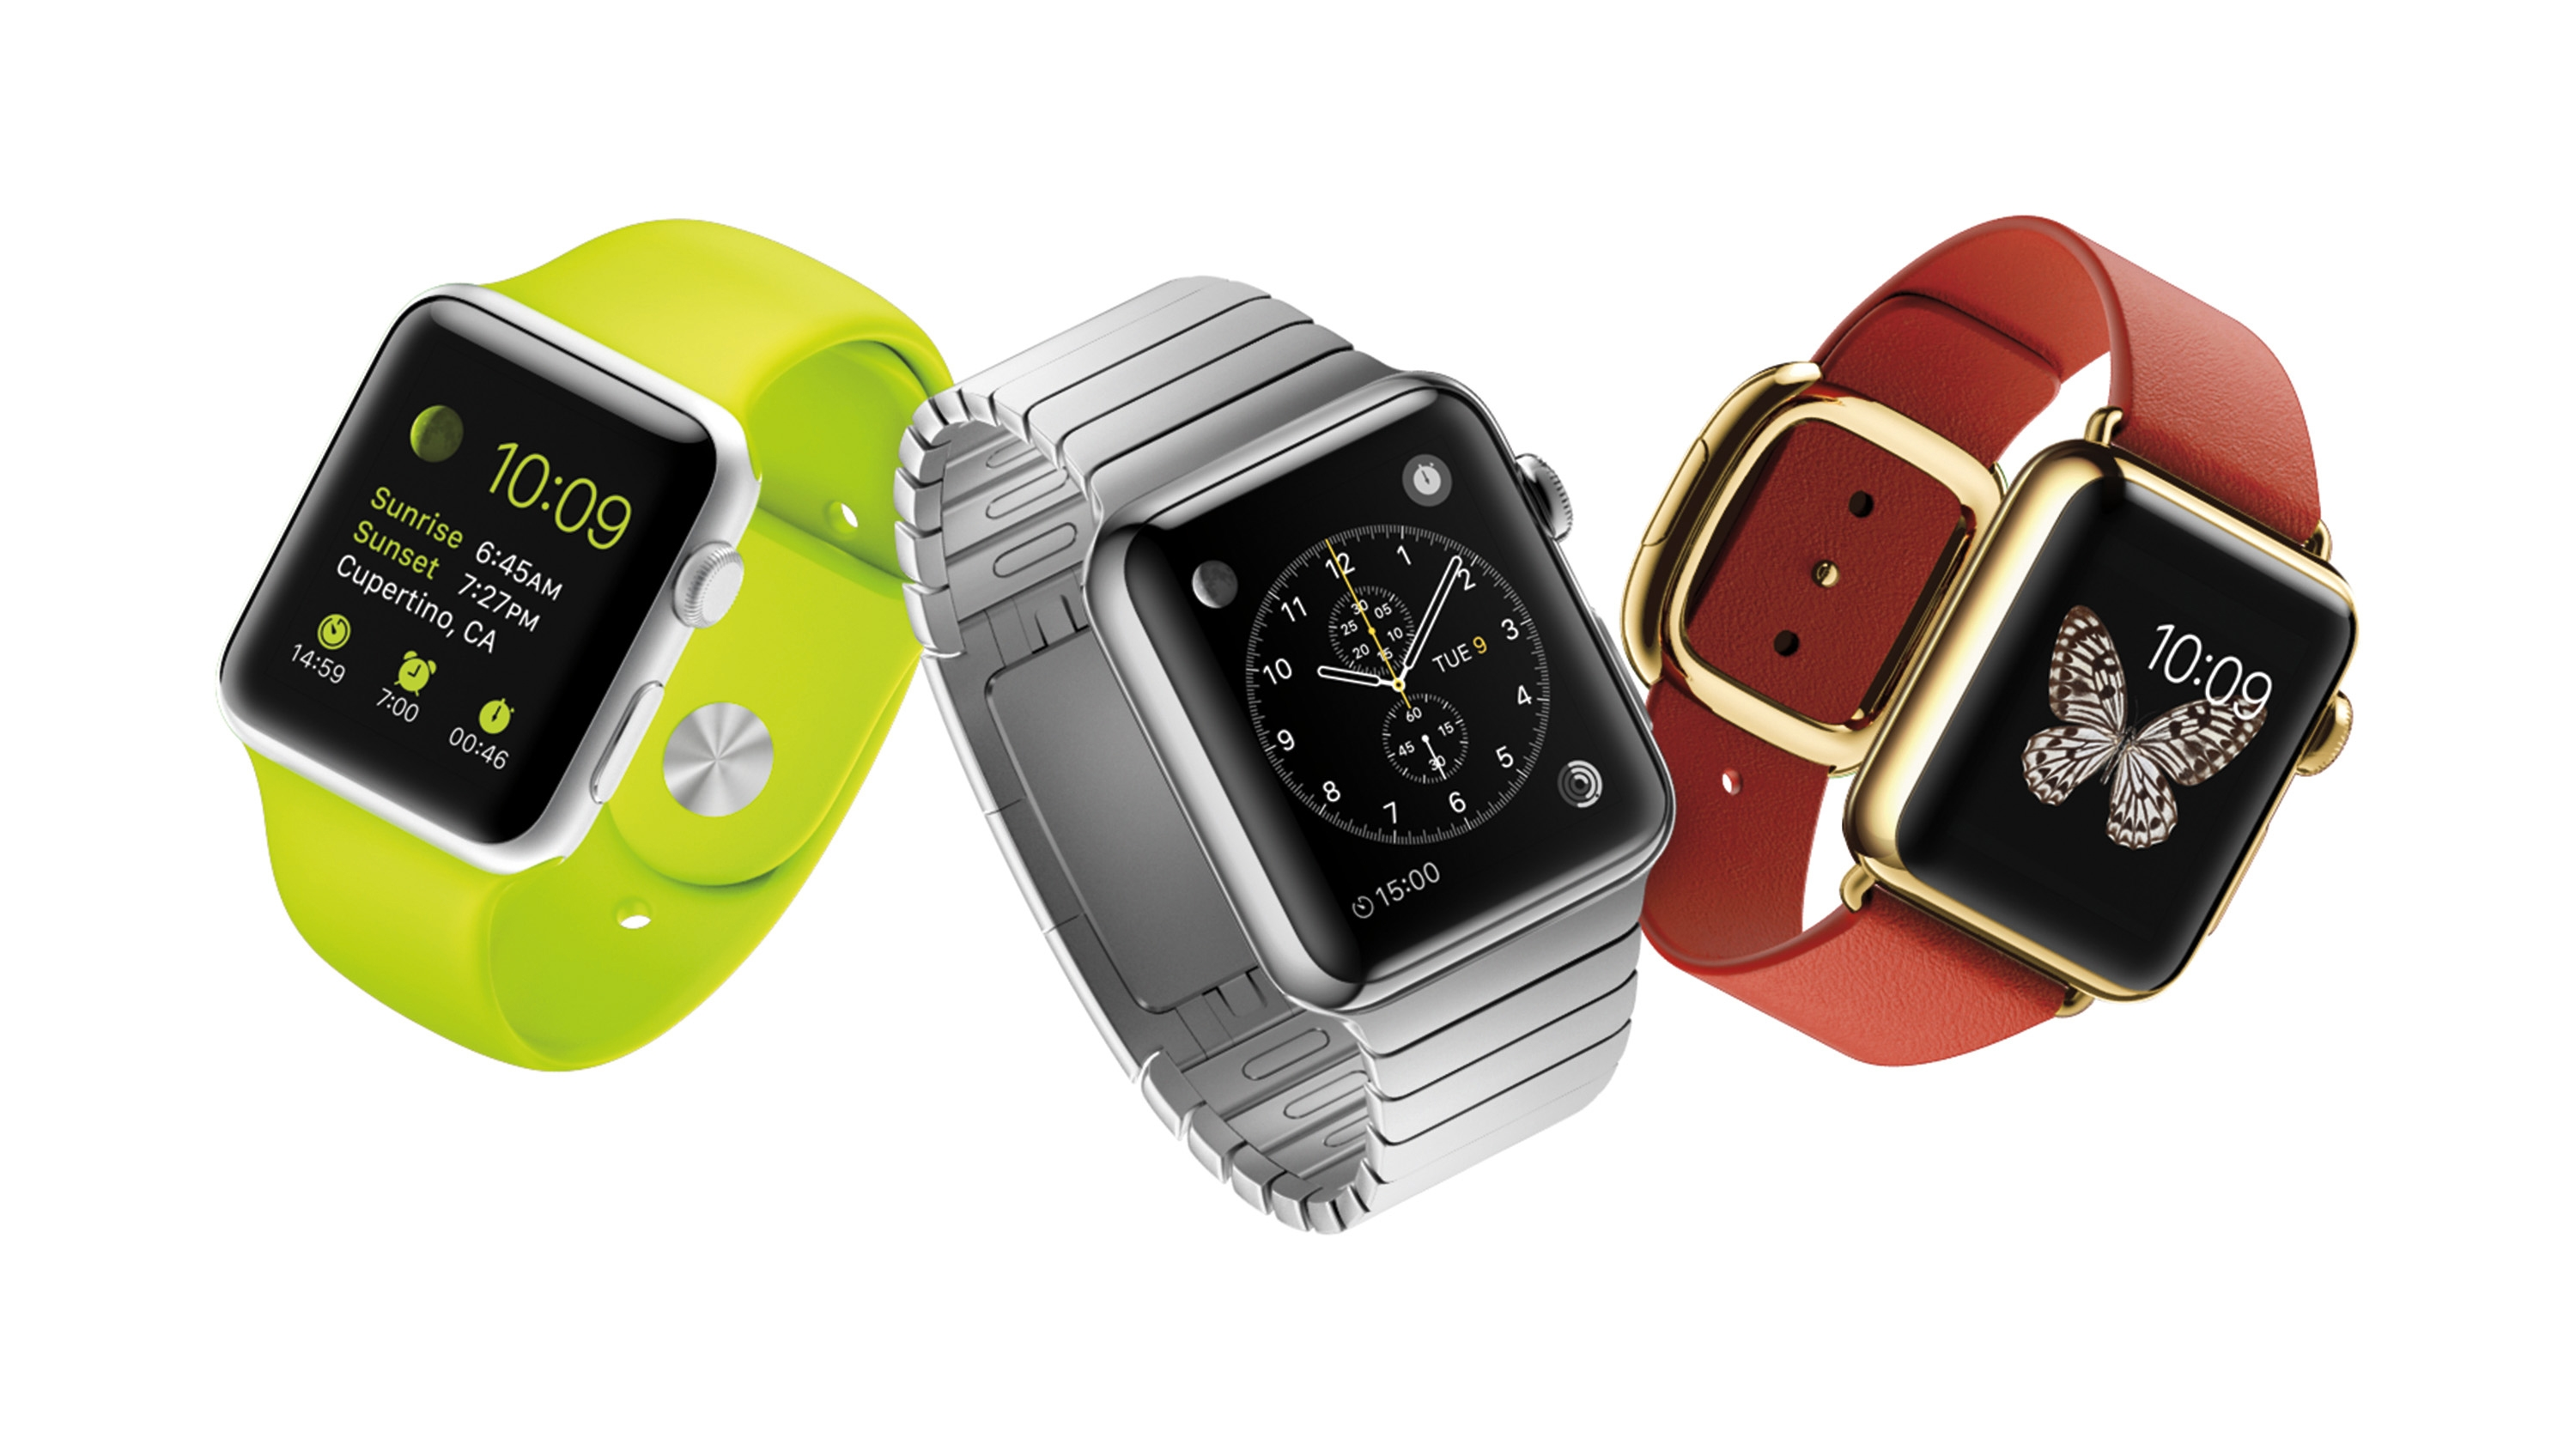 The Apple Watch comes in three distinctive styles: the Apple Watch, the Apple Watch Sport and the Apple Watch Edition. (Photo courtesy Apple/TNS)